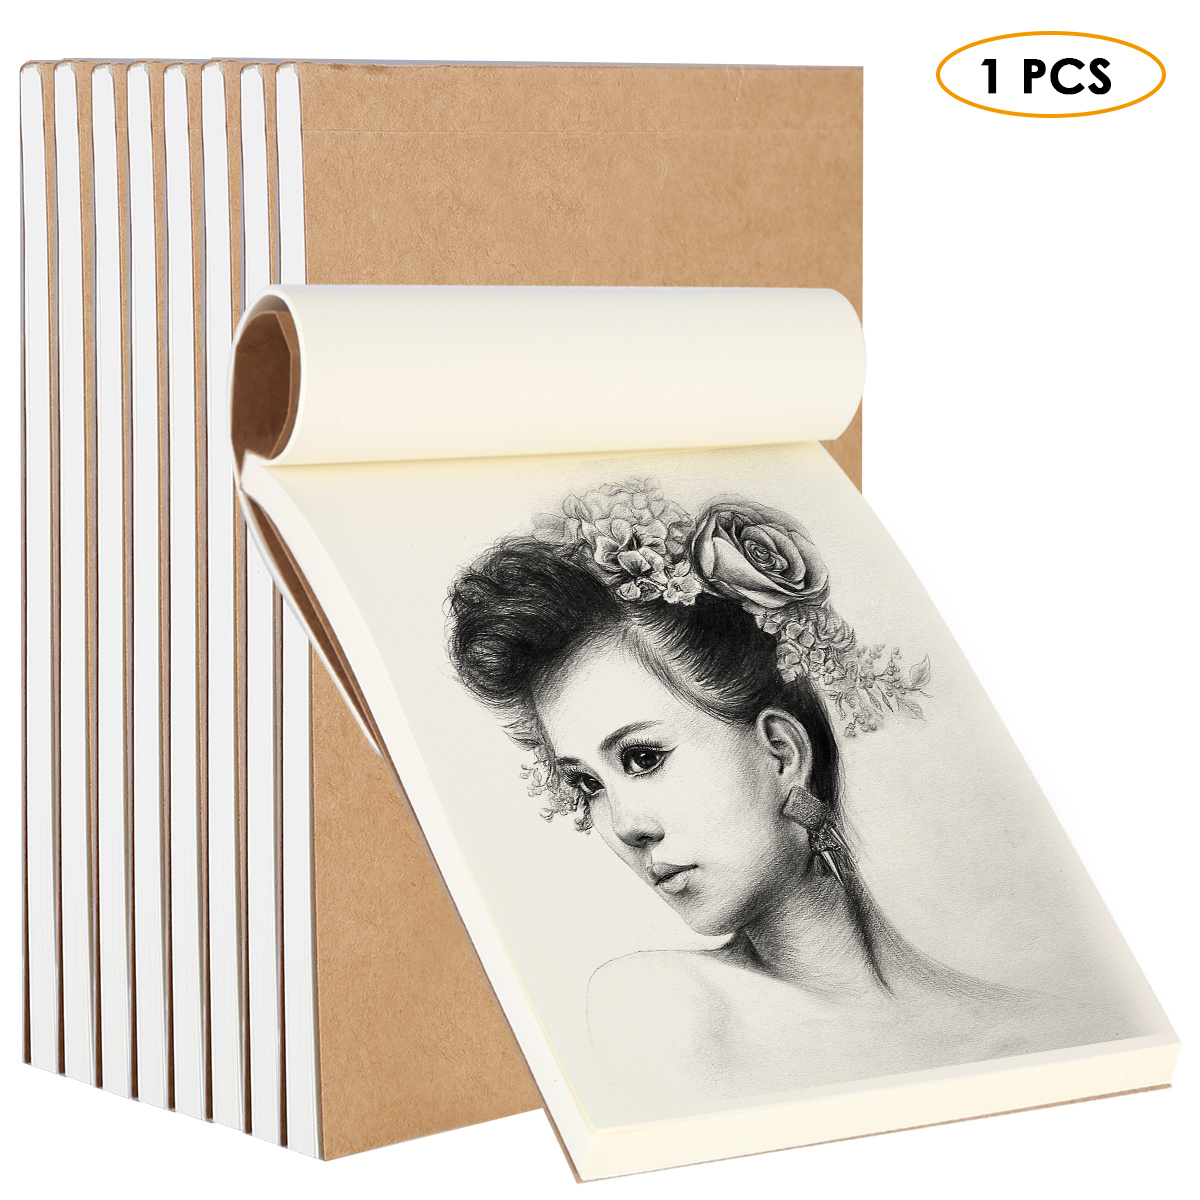 1Pc Kraft Cover Drawing Sketchbook Blank Flipbook Thumb Flip Books 80 Sheets For Animation Cartoon Creation